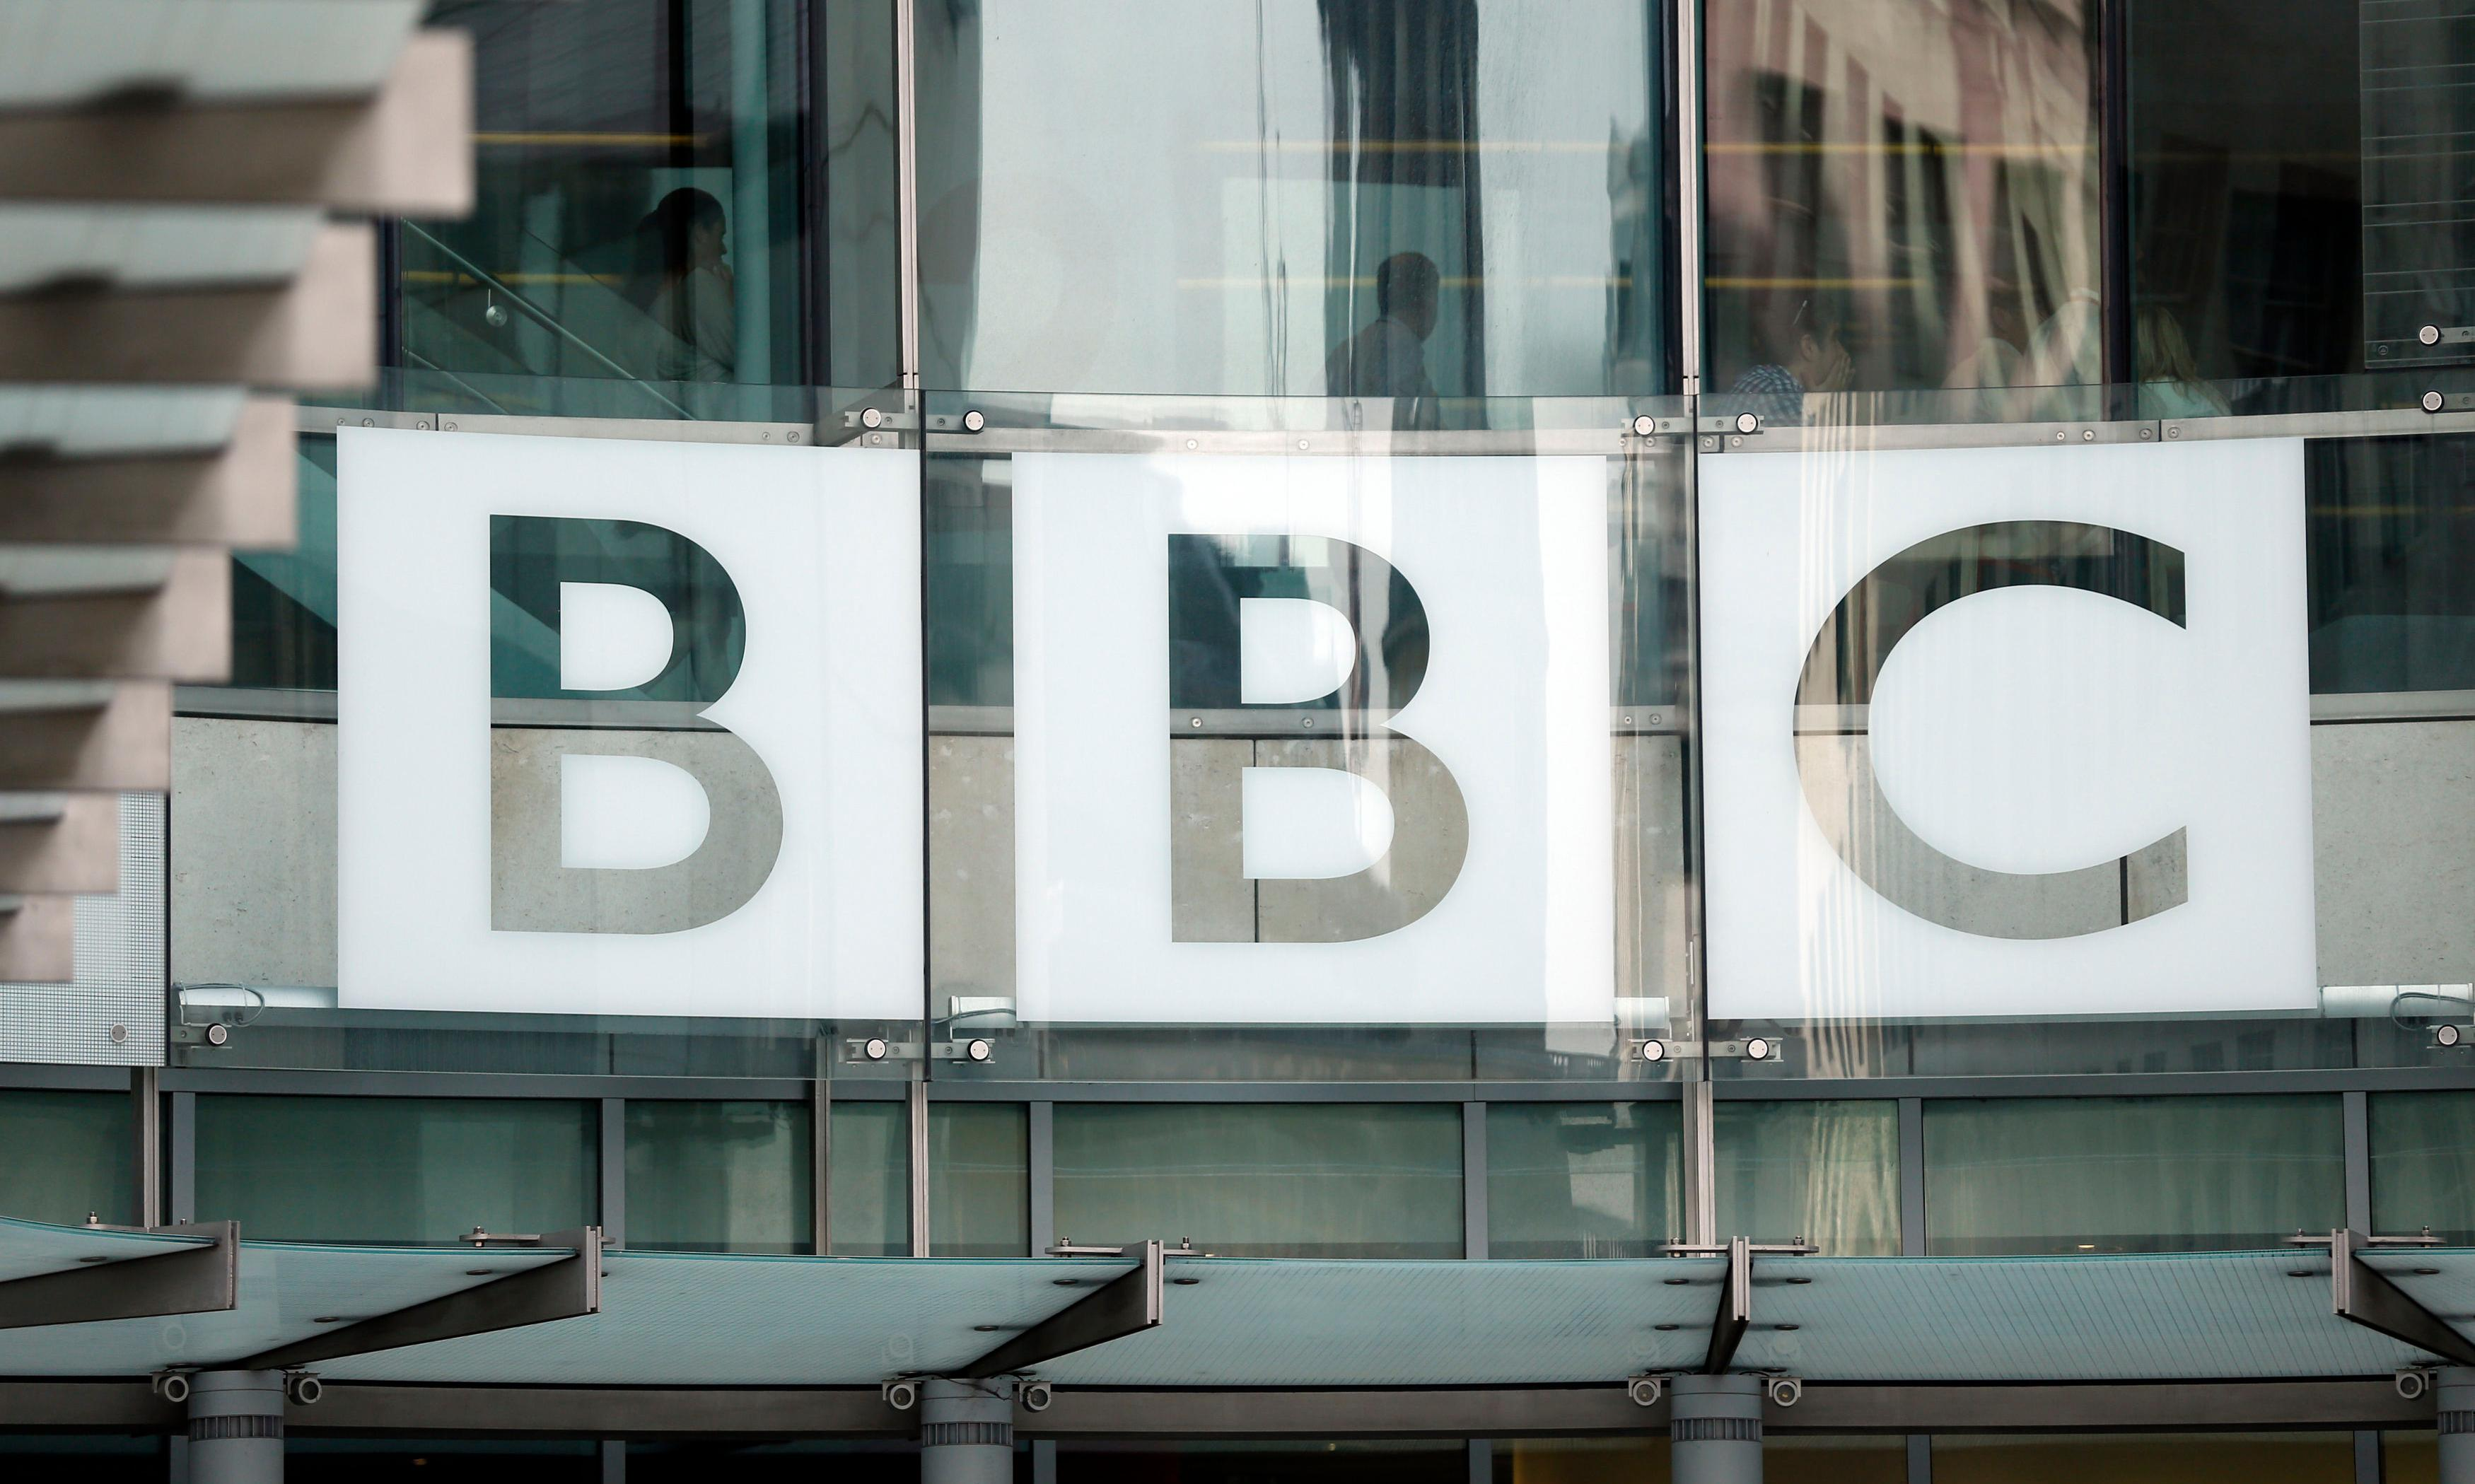 BBC to switch off Red Button information service in 2020